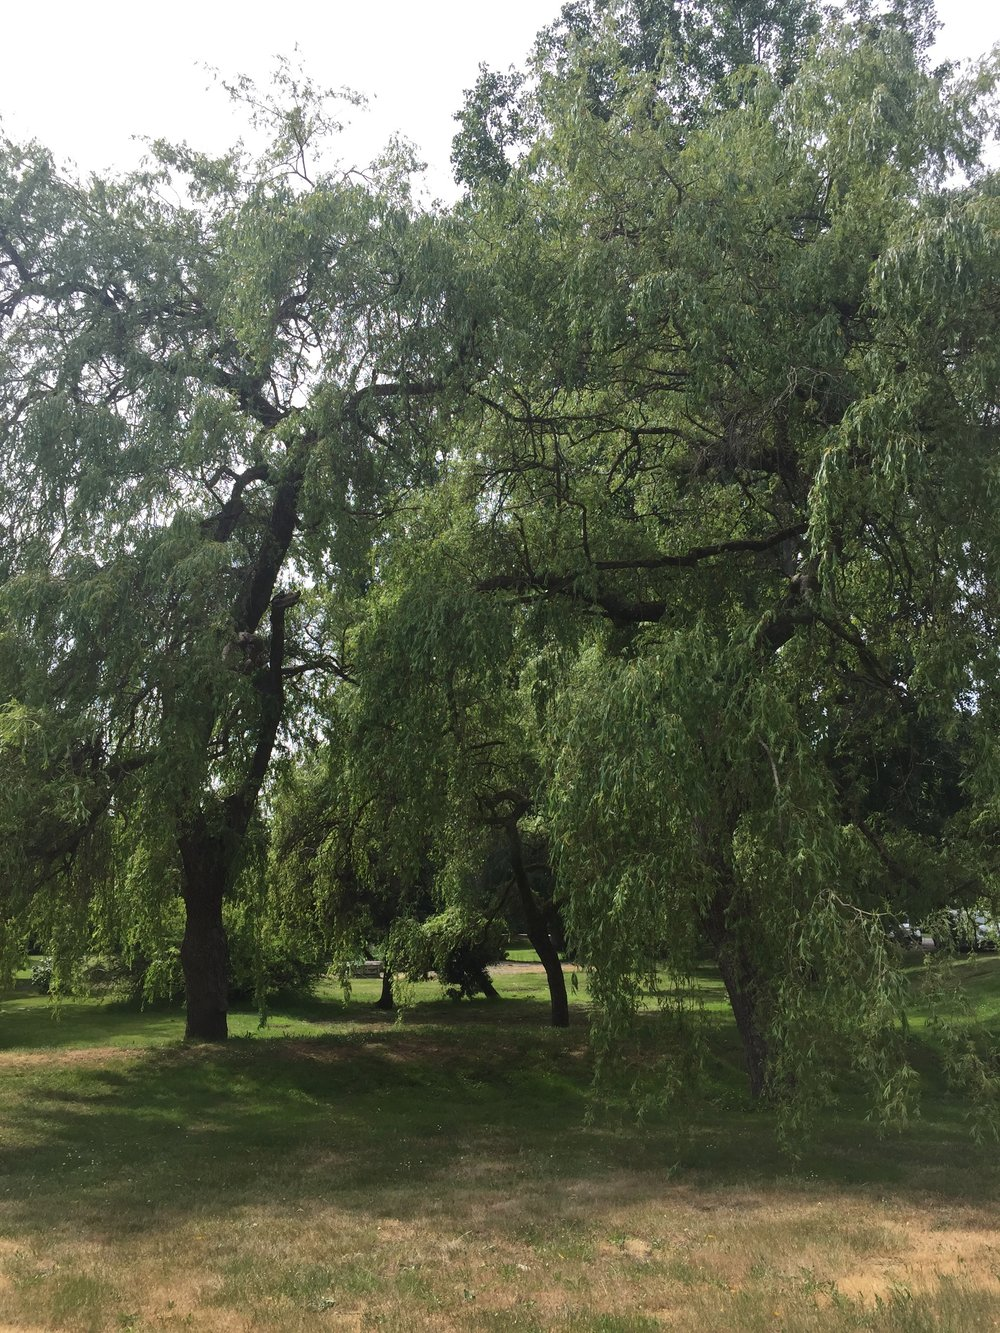 The largest of the two Scouler's willows appears to be on the right.